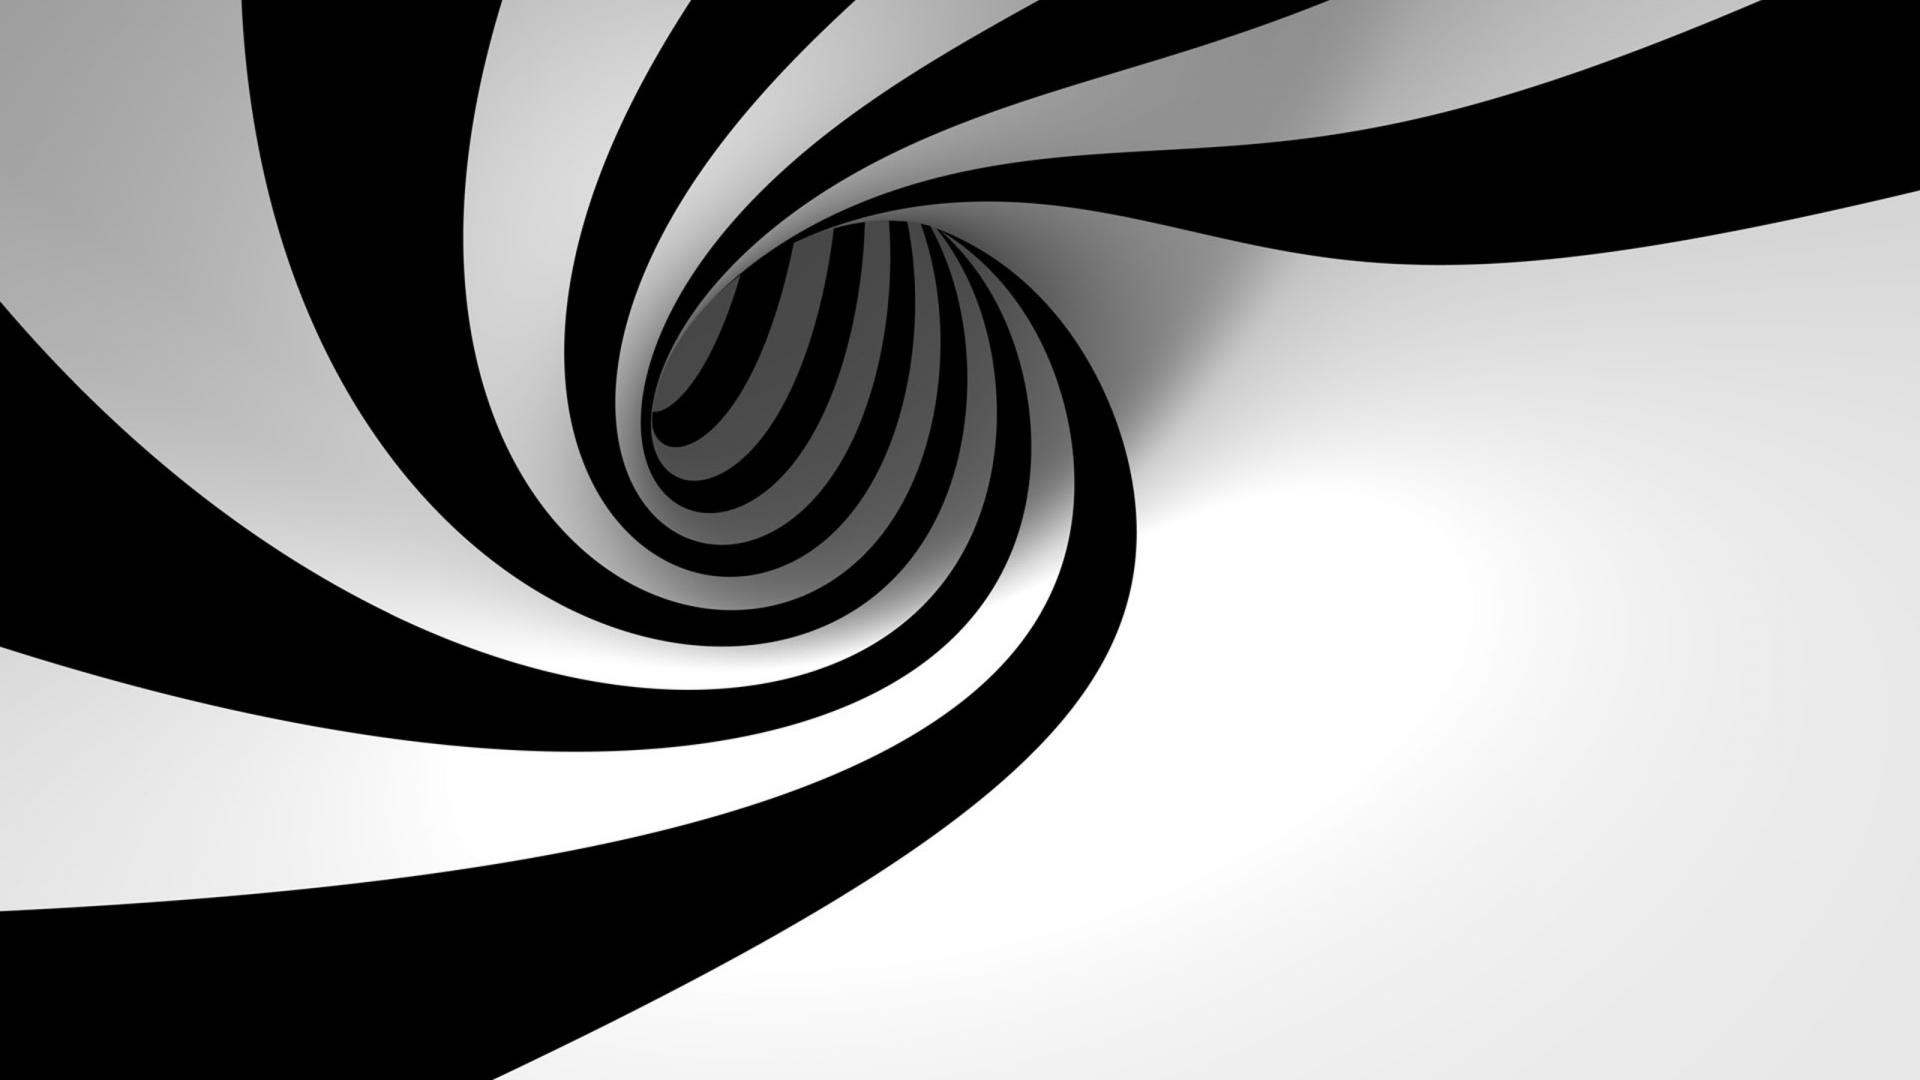 1920x1080 3D Backgrounds Black and White HD Wallpaper